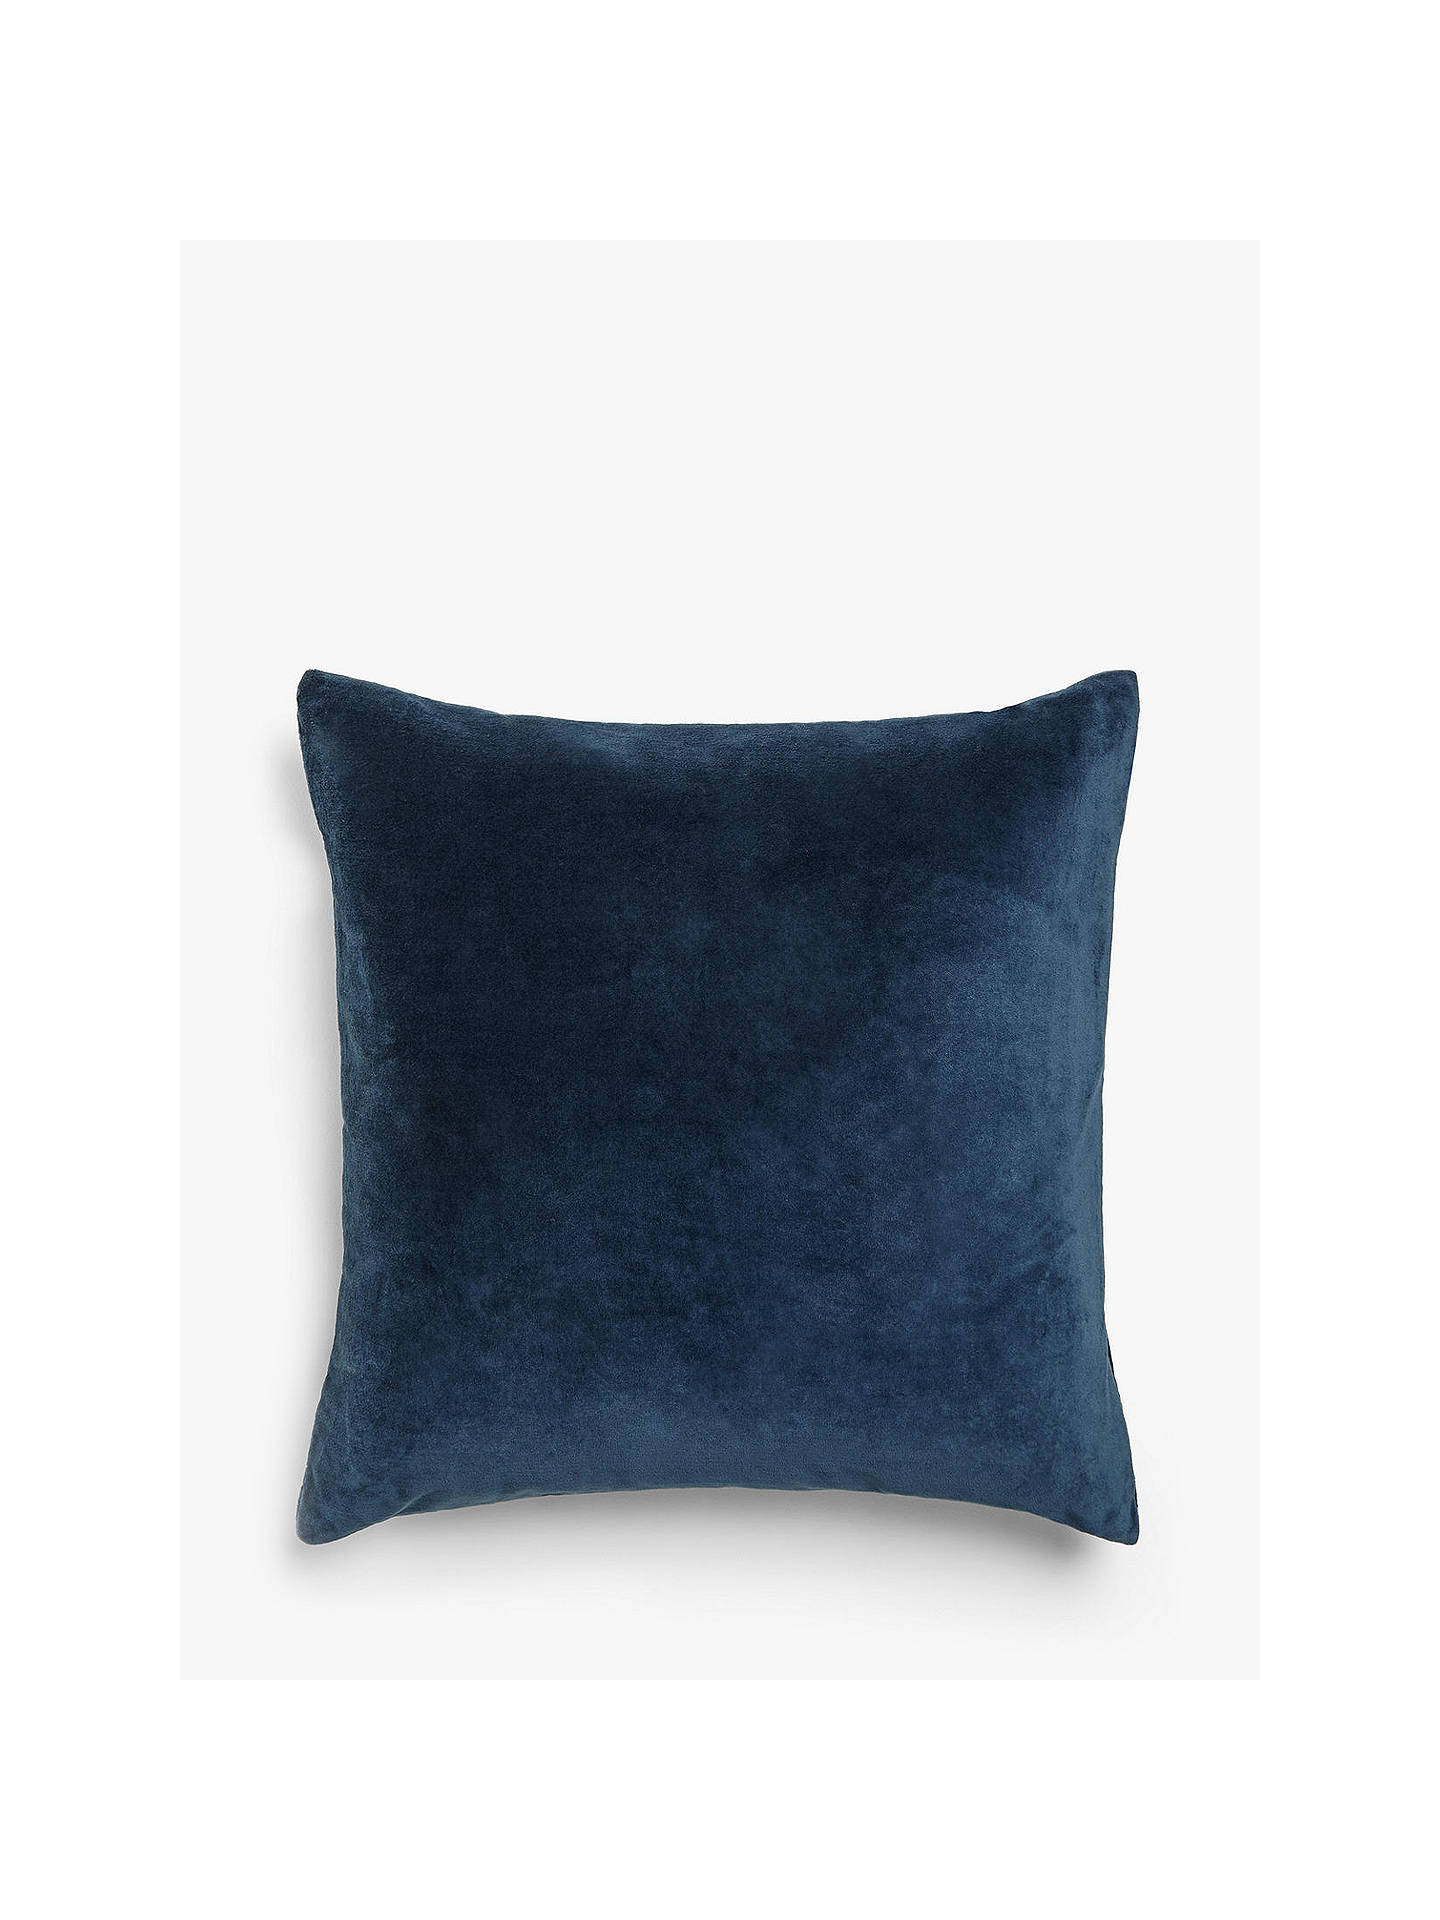 Buy John Lewis & Partners Cotton Velvet Cushion, Navy Online at johnlewis.com